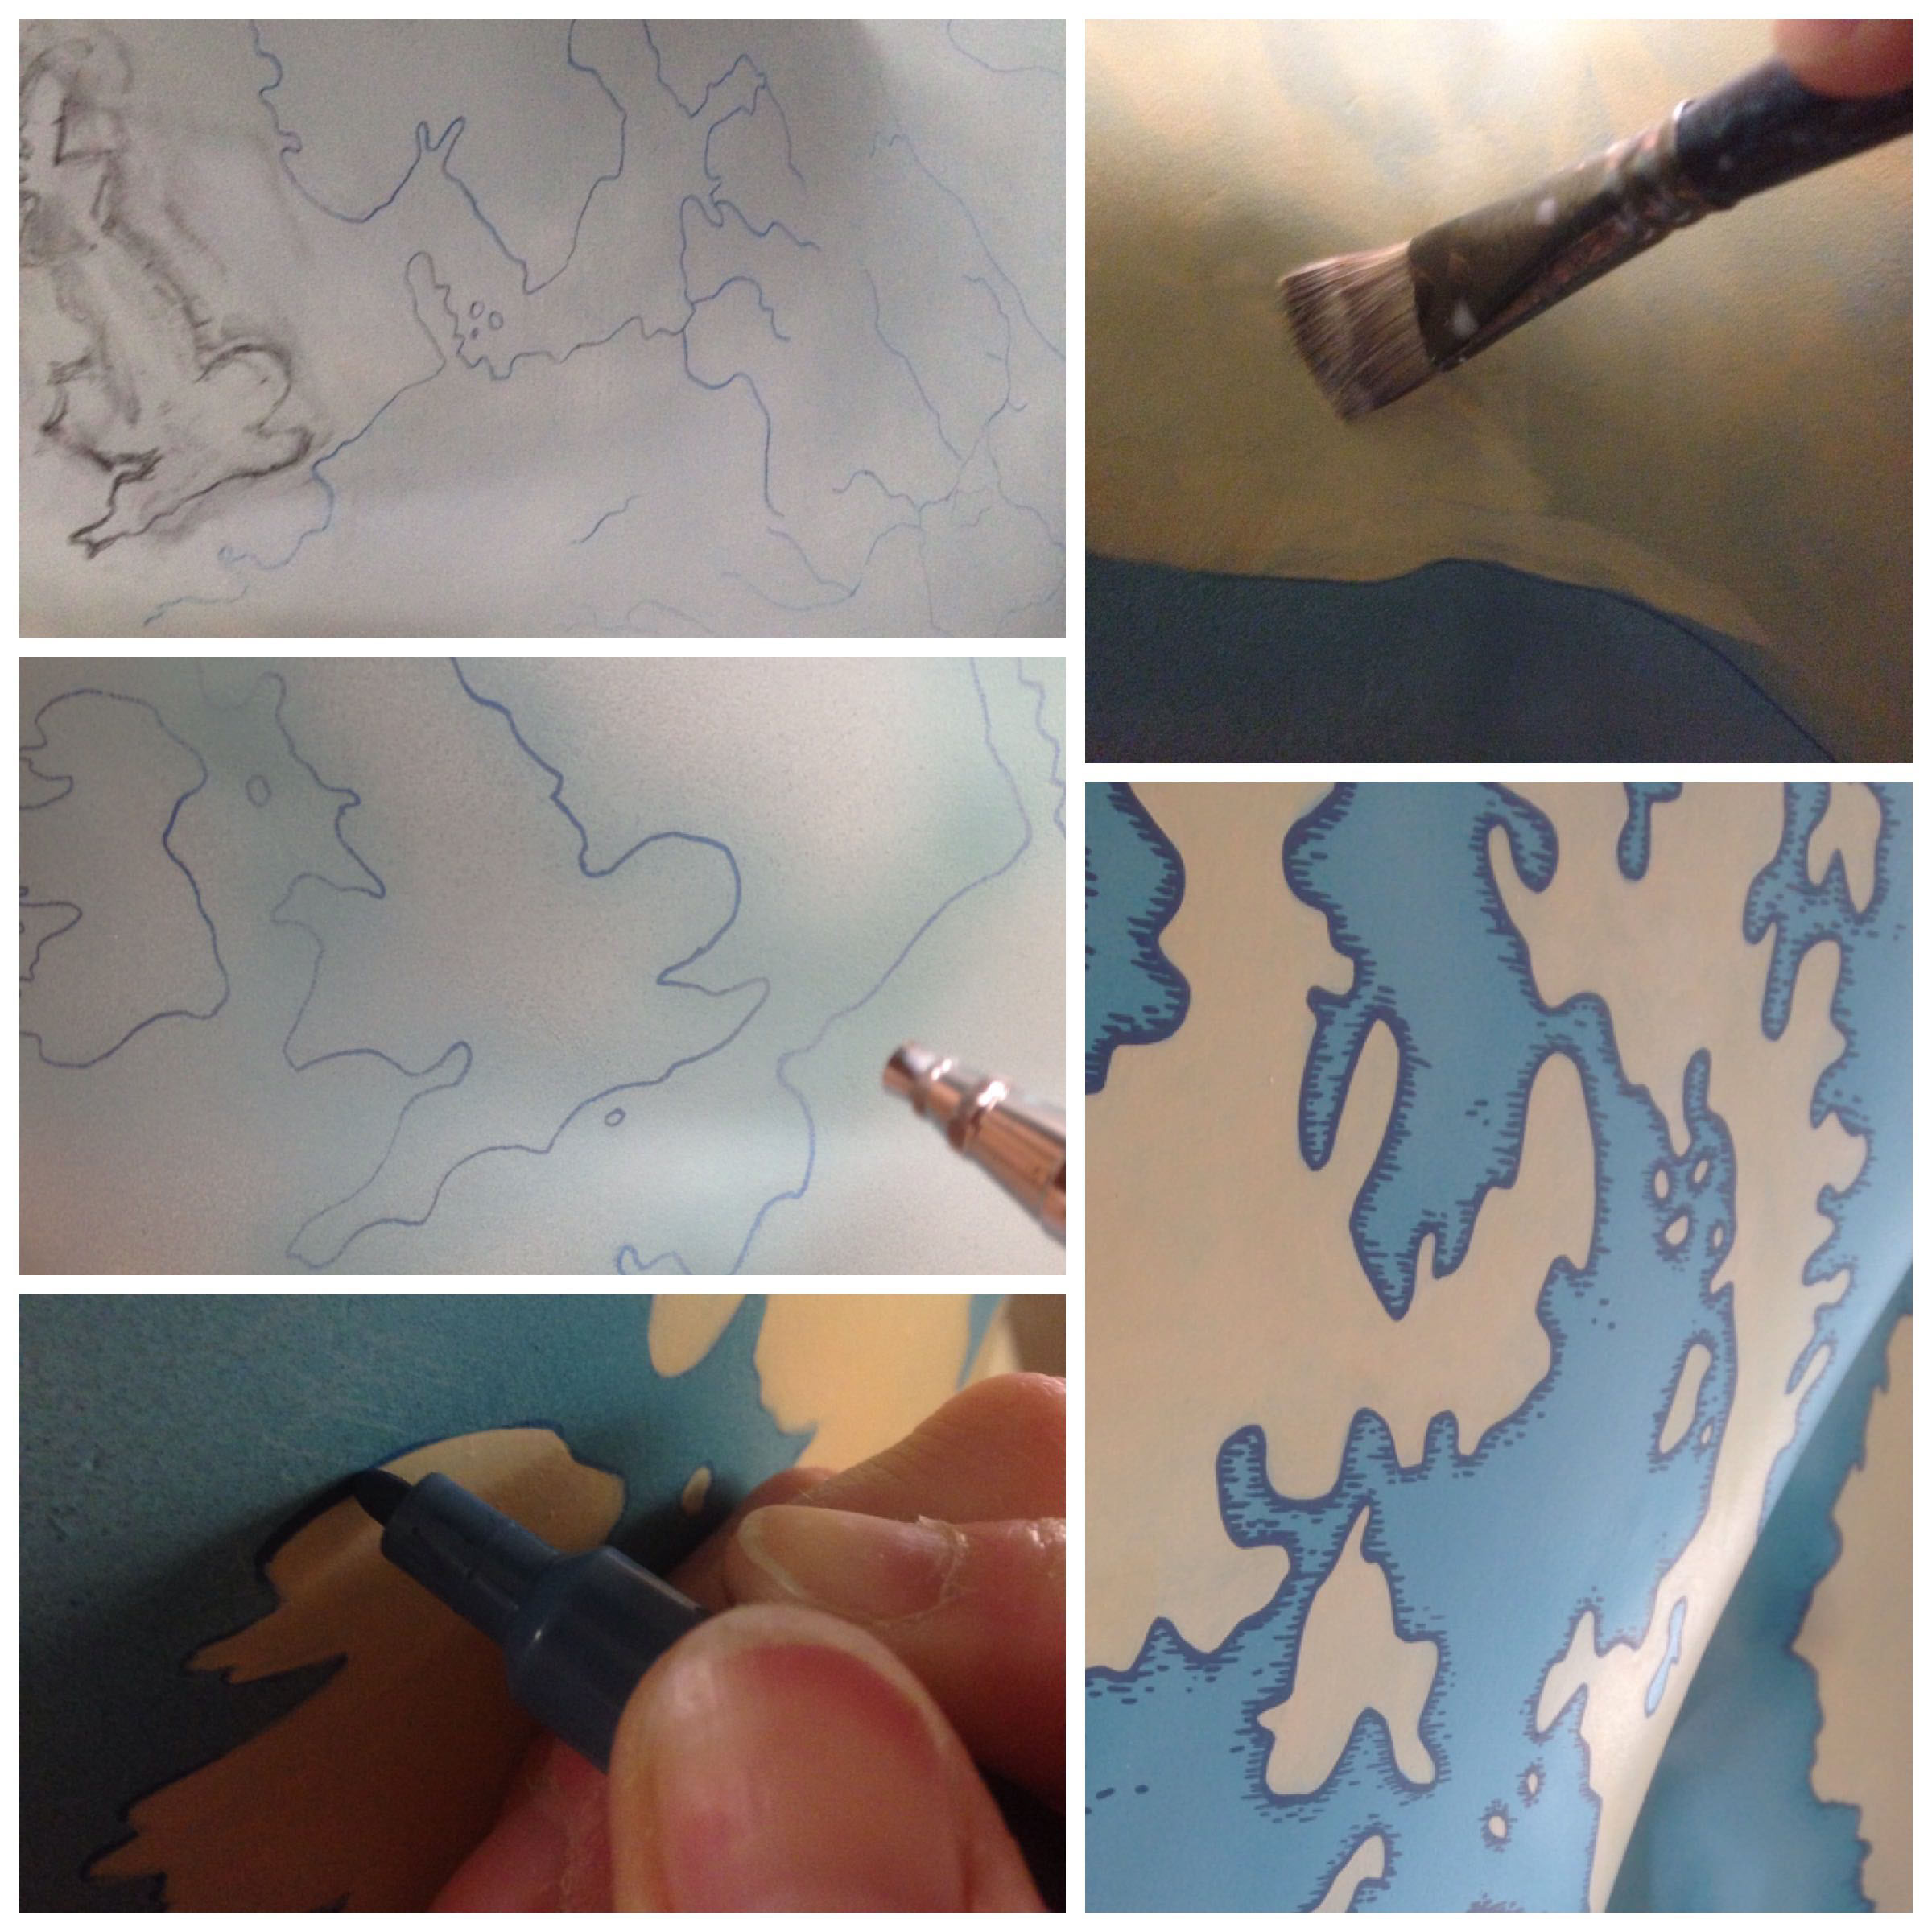 Process photos of illustrated map being painted by Fiona Gowen onto Norwich 2015 GoGoDragons sculpture